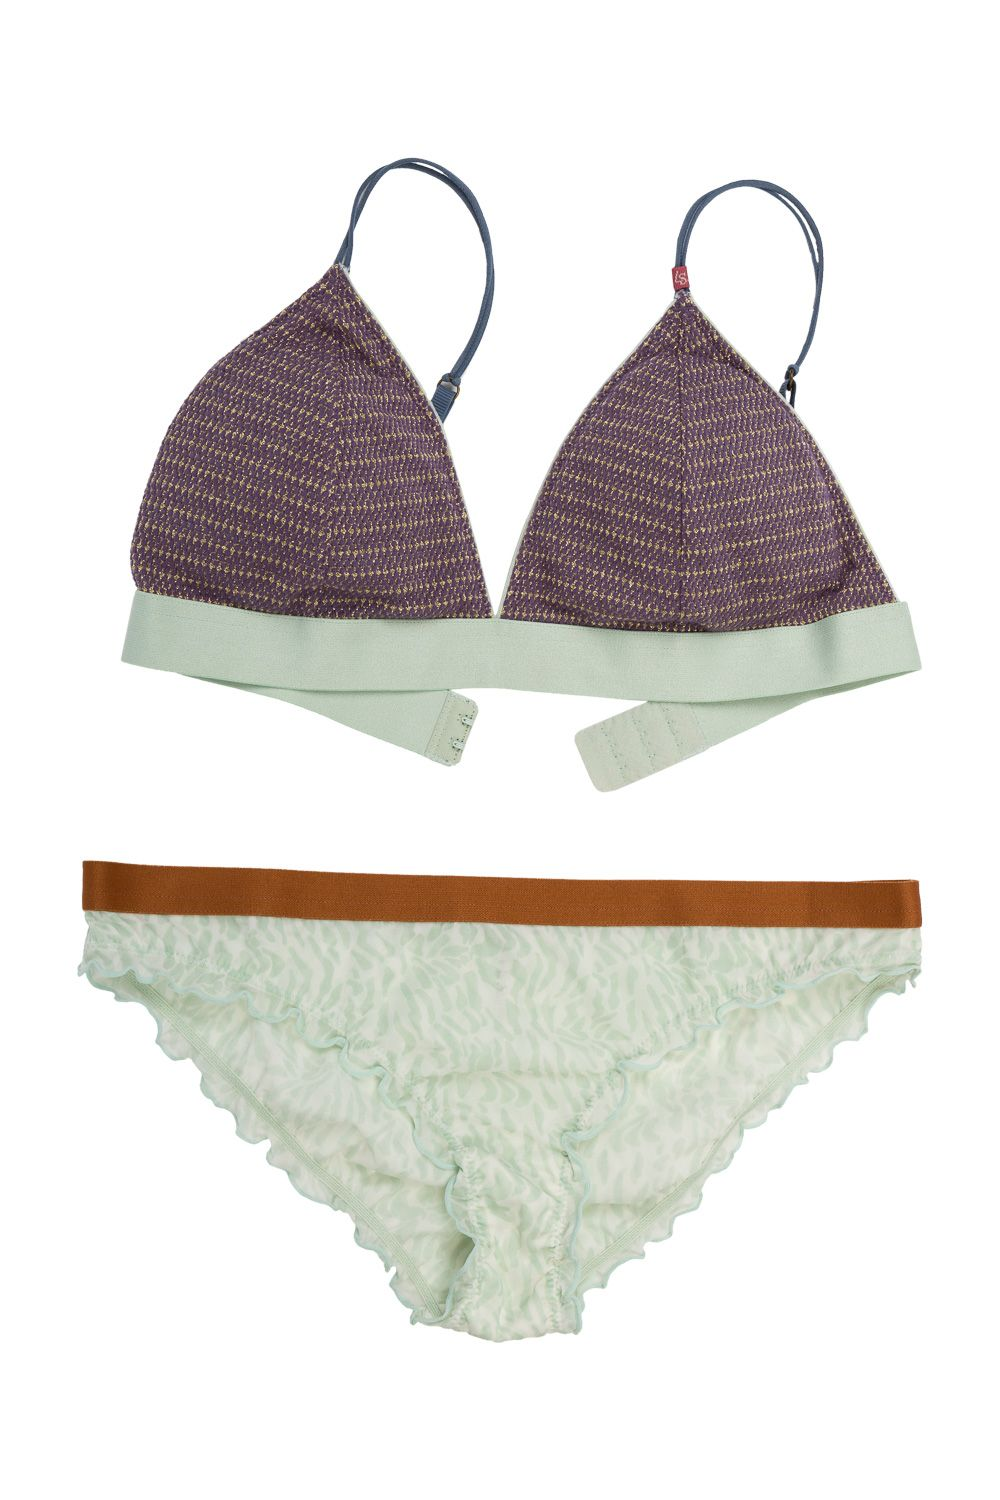 29b14d01fc ... Firecracker Elegant padded bralette - Printed low waist brief A  delightful combination of lavender yarn intertwined with a shimmery champagne  gold that ...